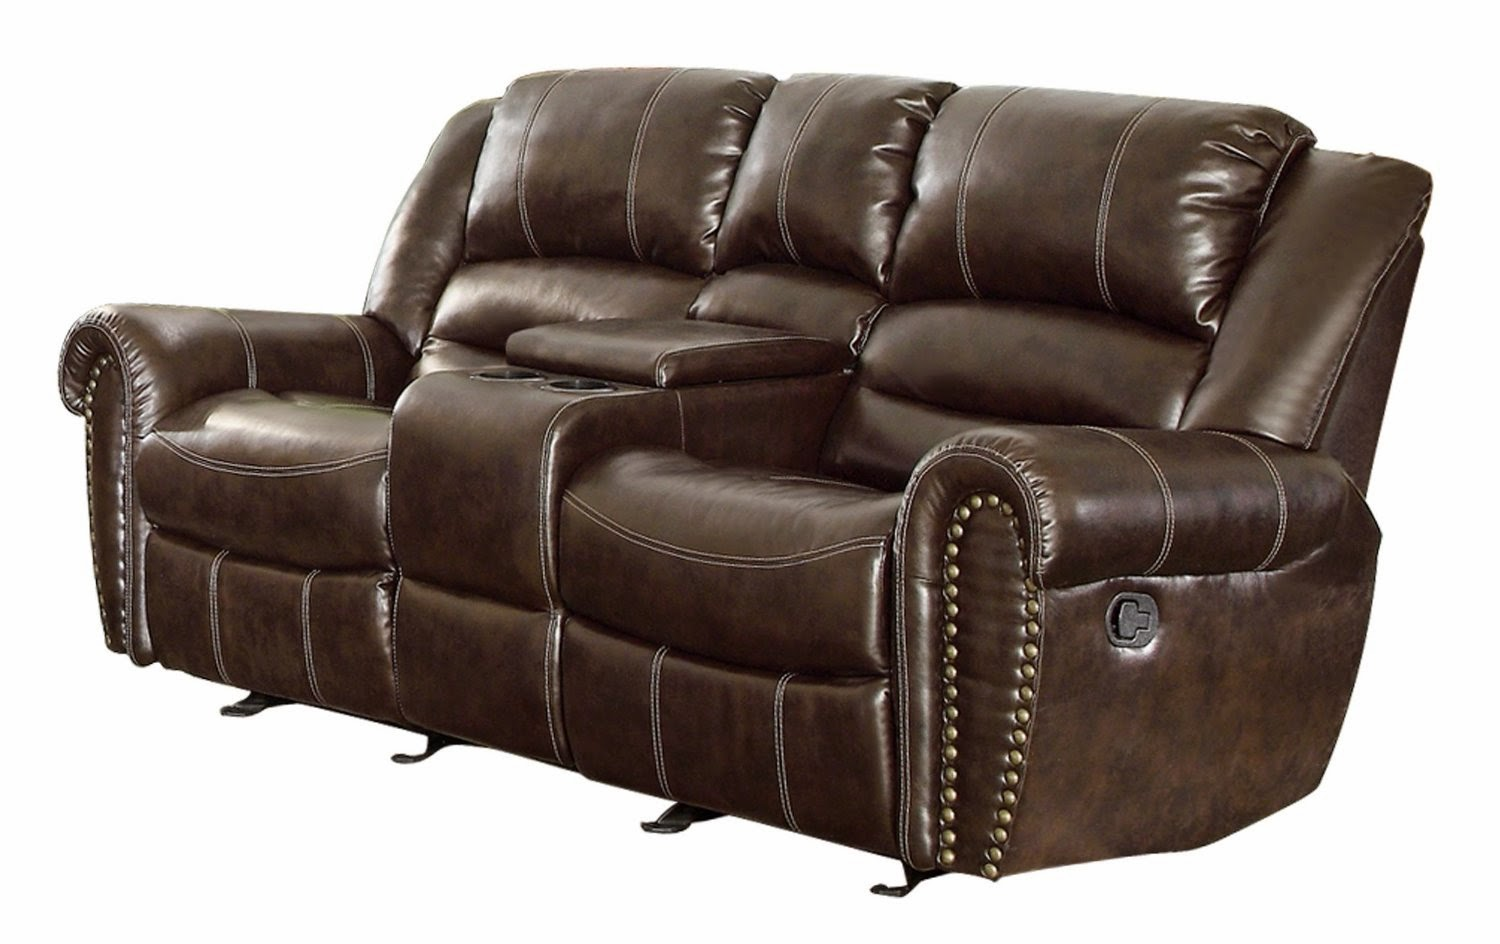 red leather sofa sets on sale black decorating ideas cheap reclining sofas 2 seater recliner